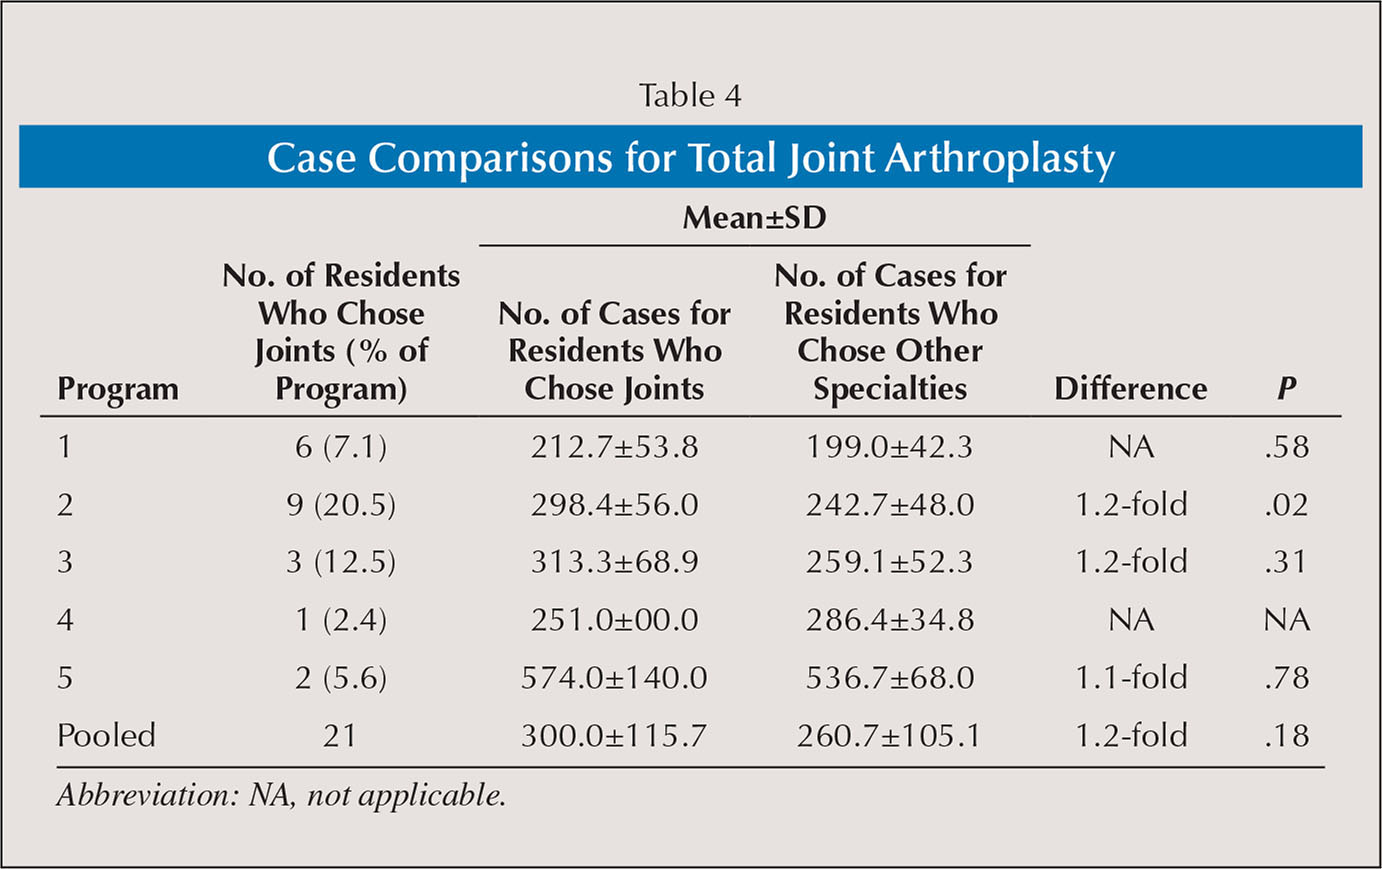 Case Comparisons for Total Joint Arthroplasty